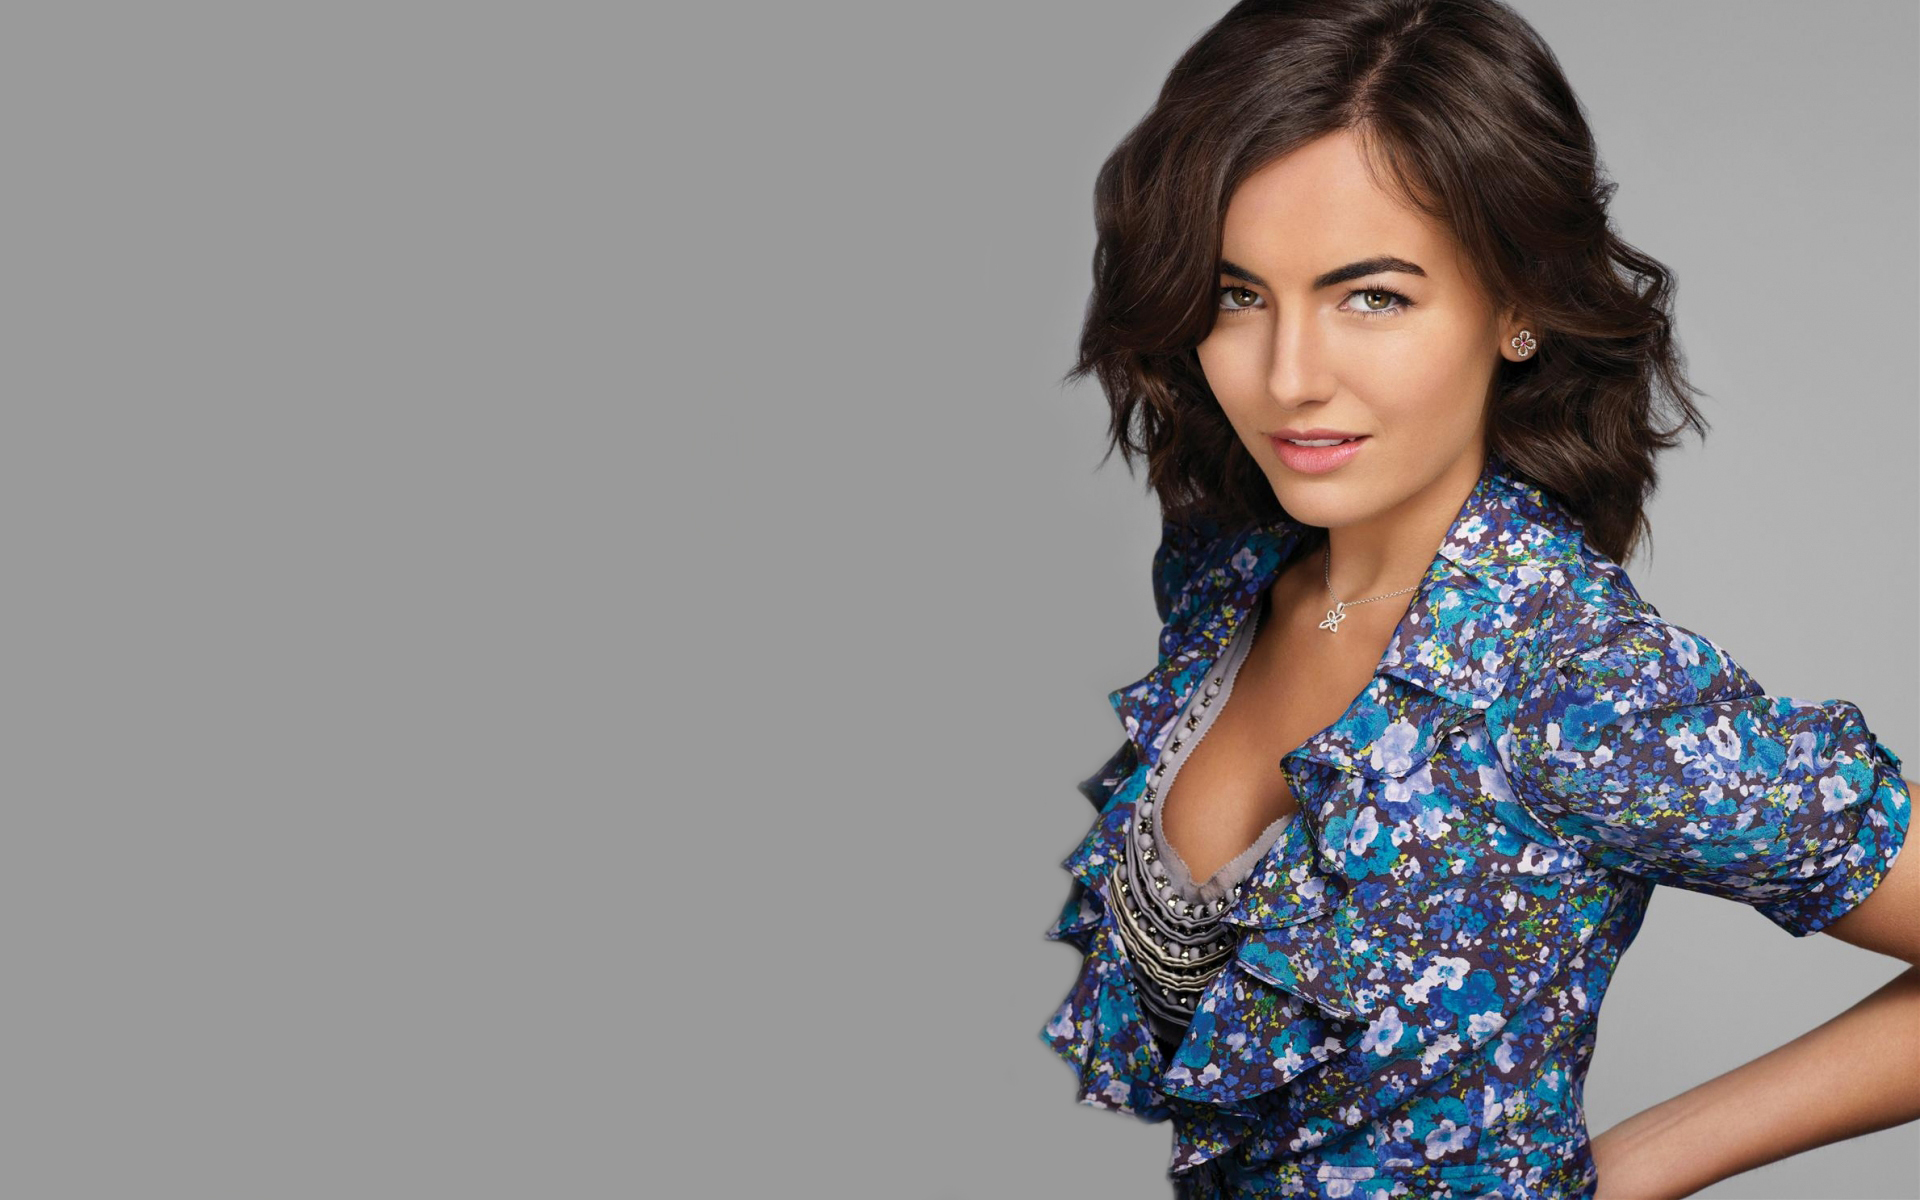 female celebrities hd wallpapers free download